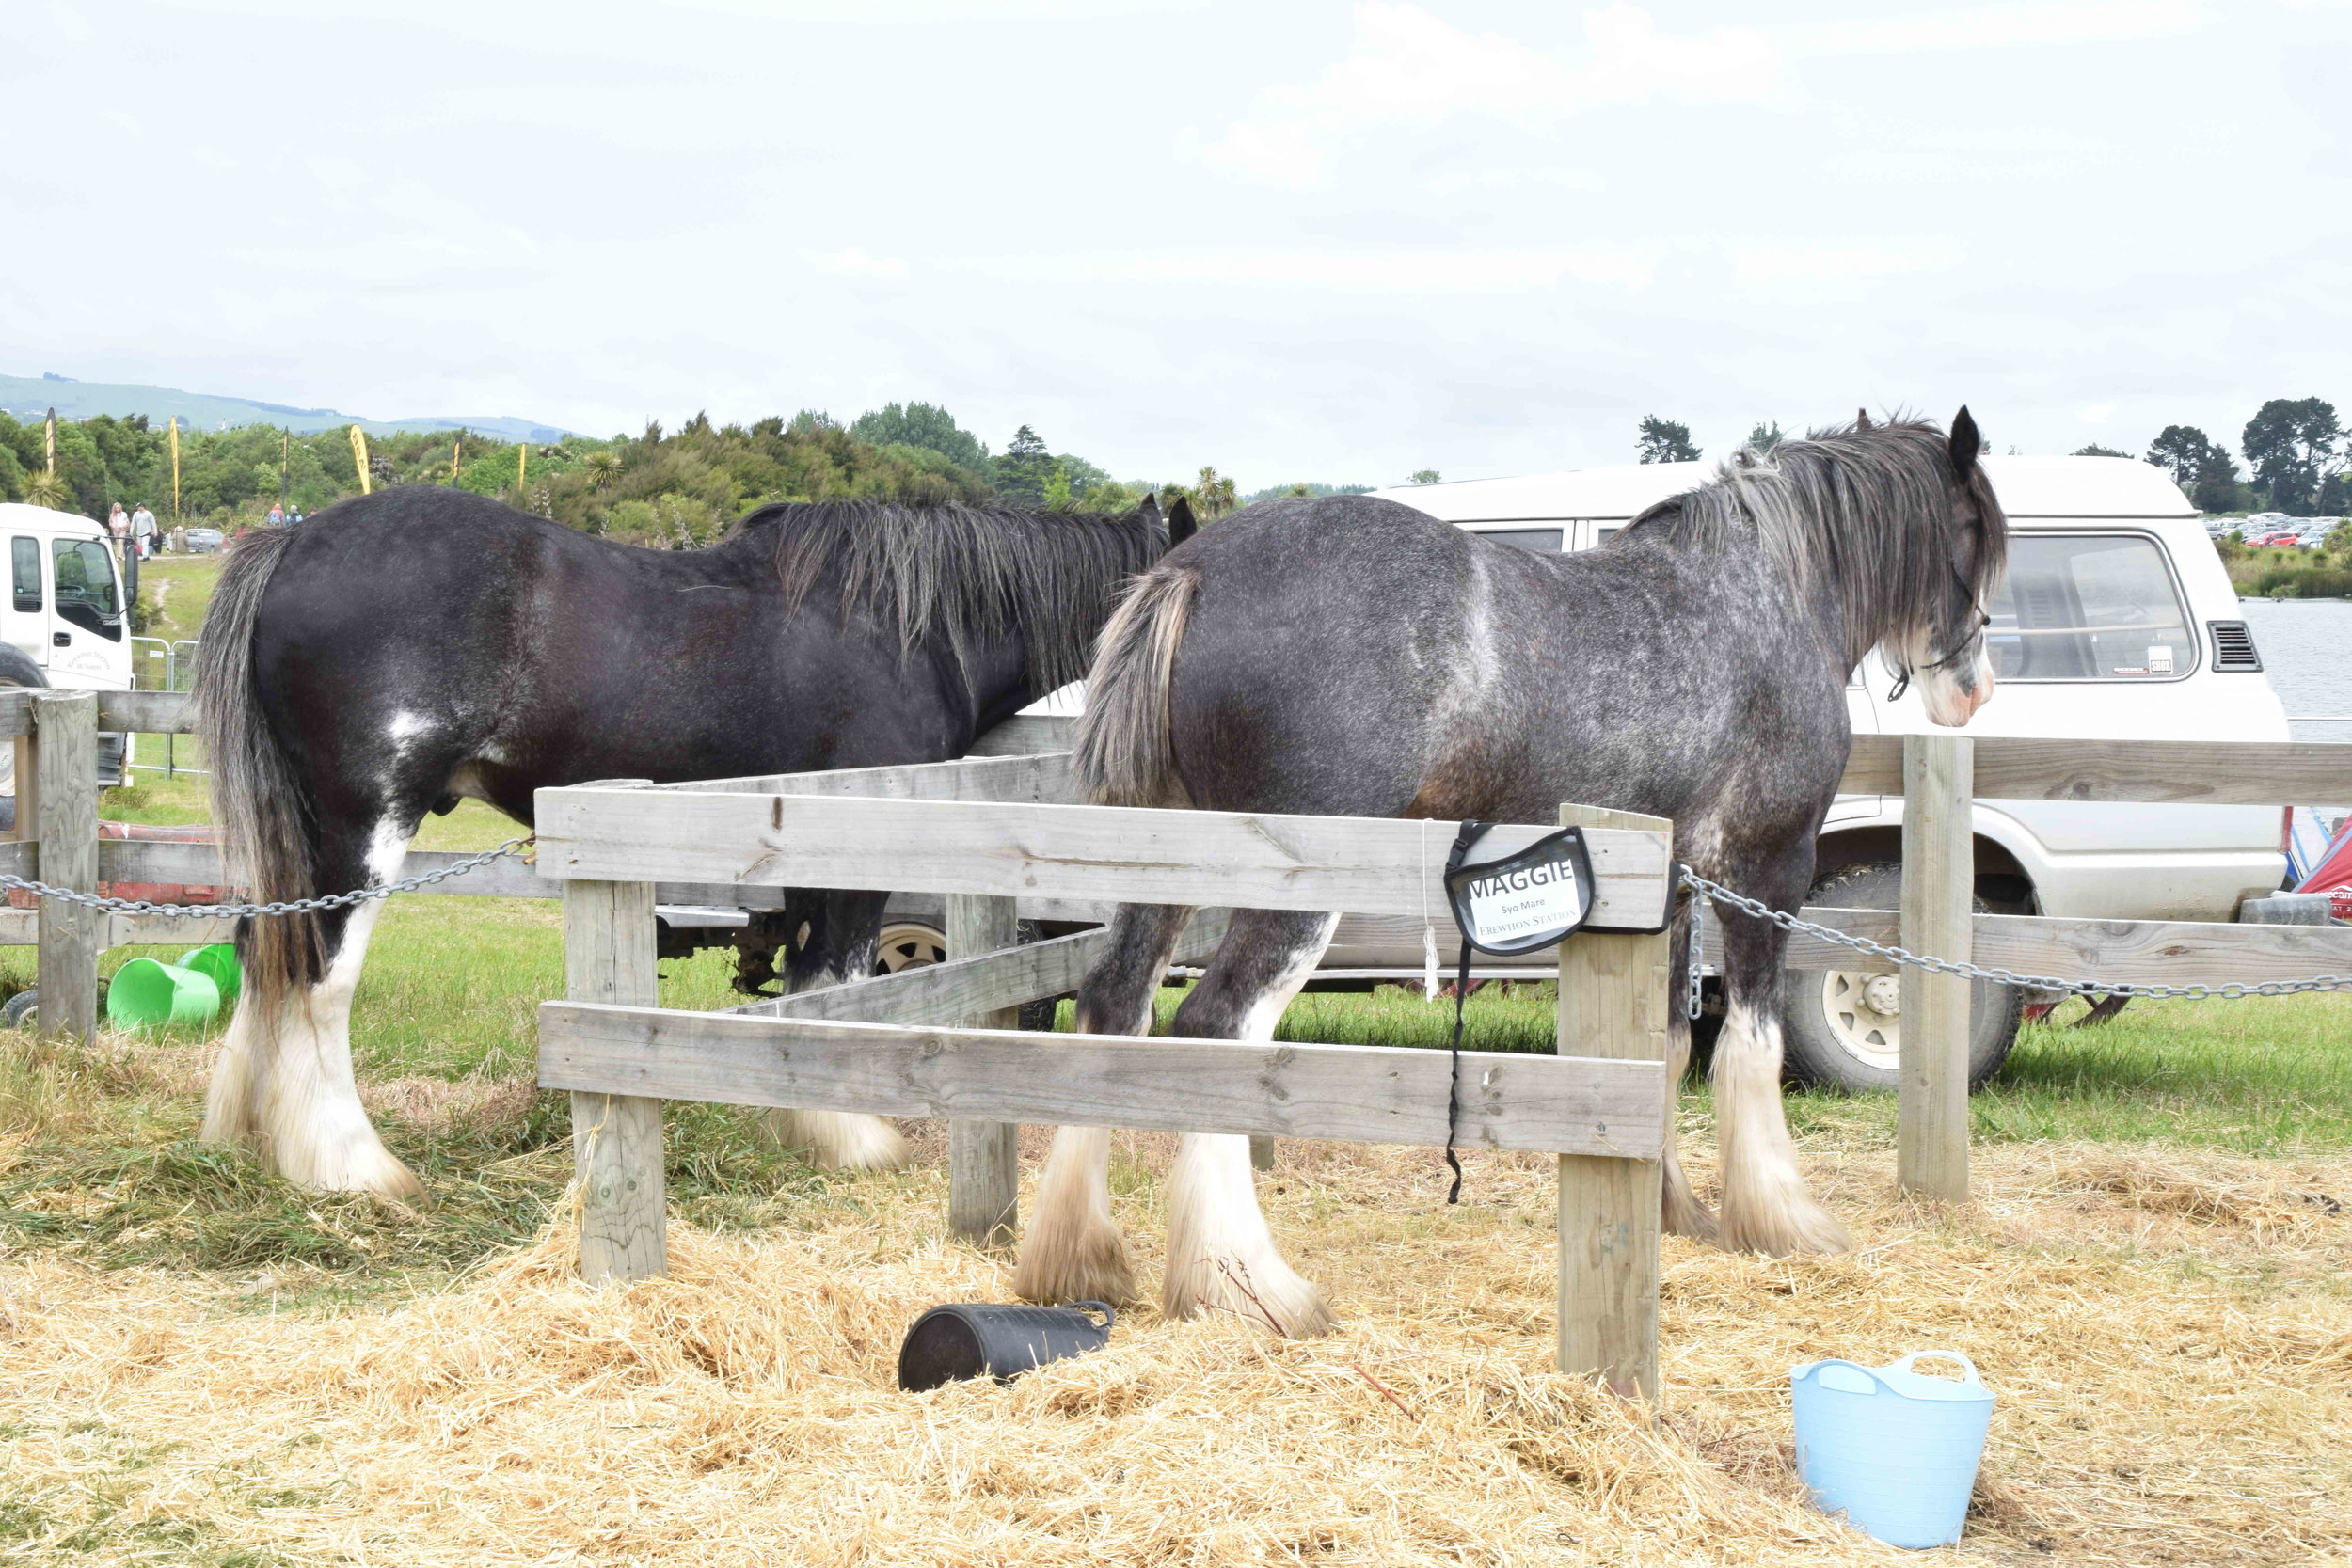 As always, animals were the attraction of the event; seen above are the Ballantynes Clydesdales